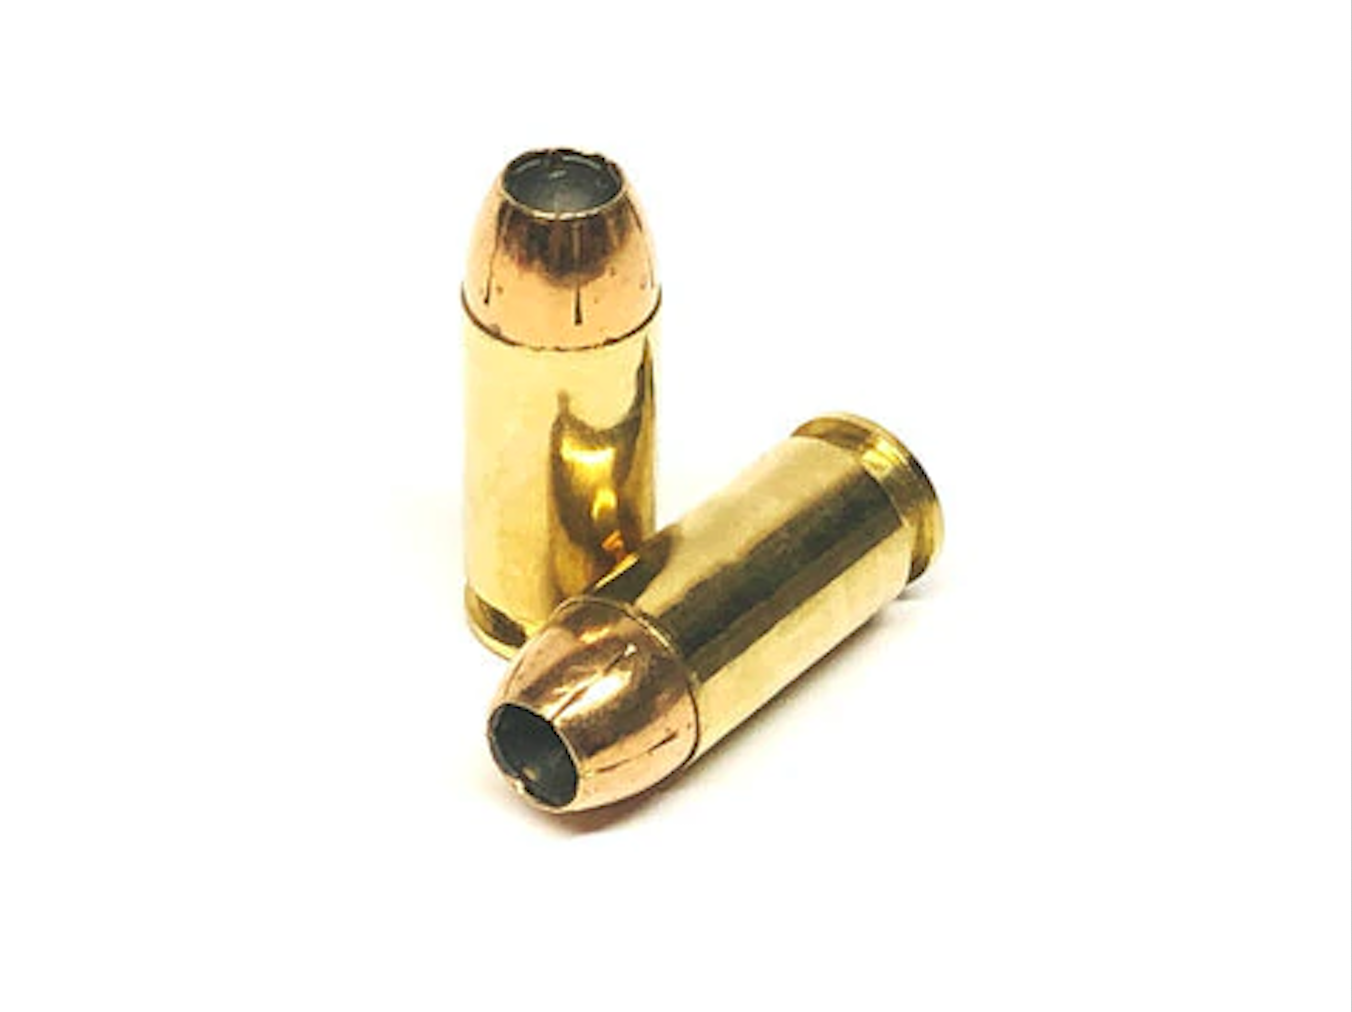 40 s&w ammo available at Rhuged